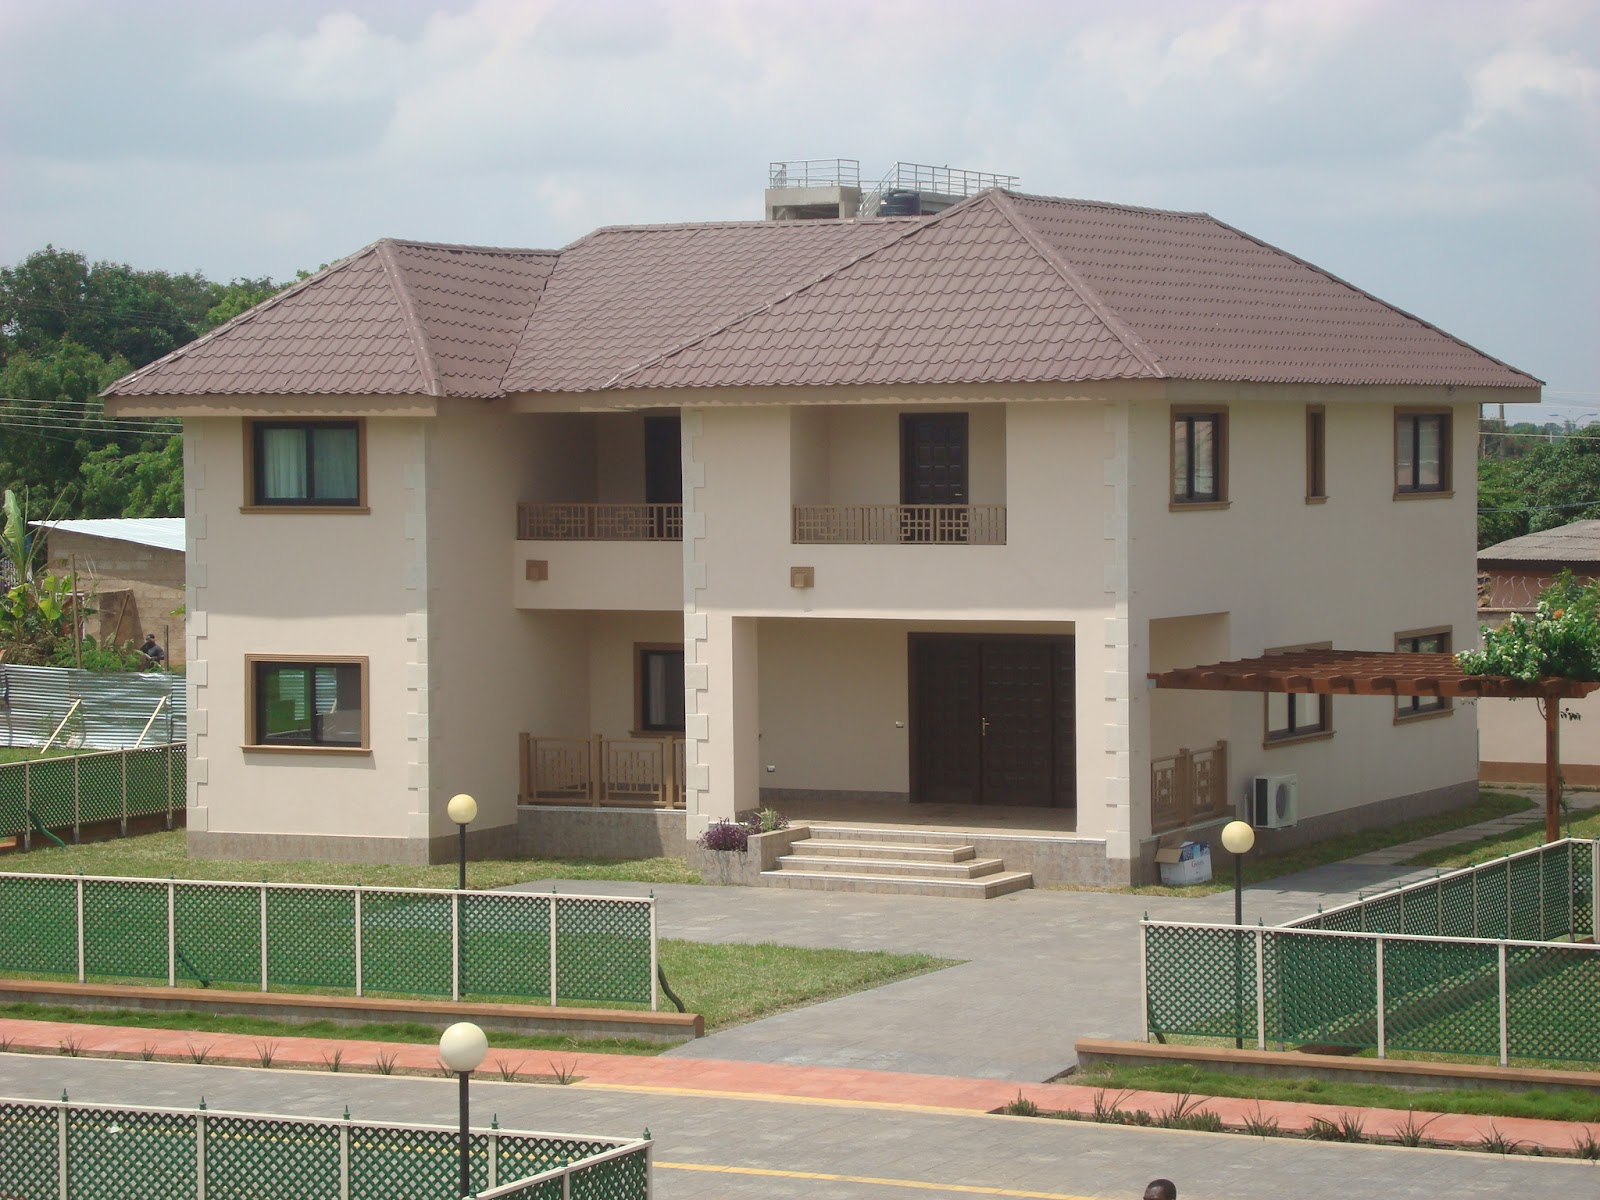 House for sale accra ghana fiore village gated community for Houses for sale